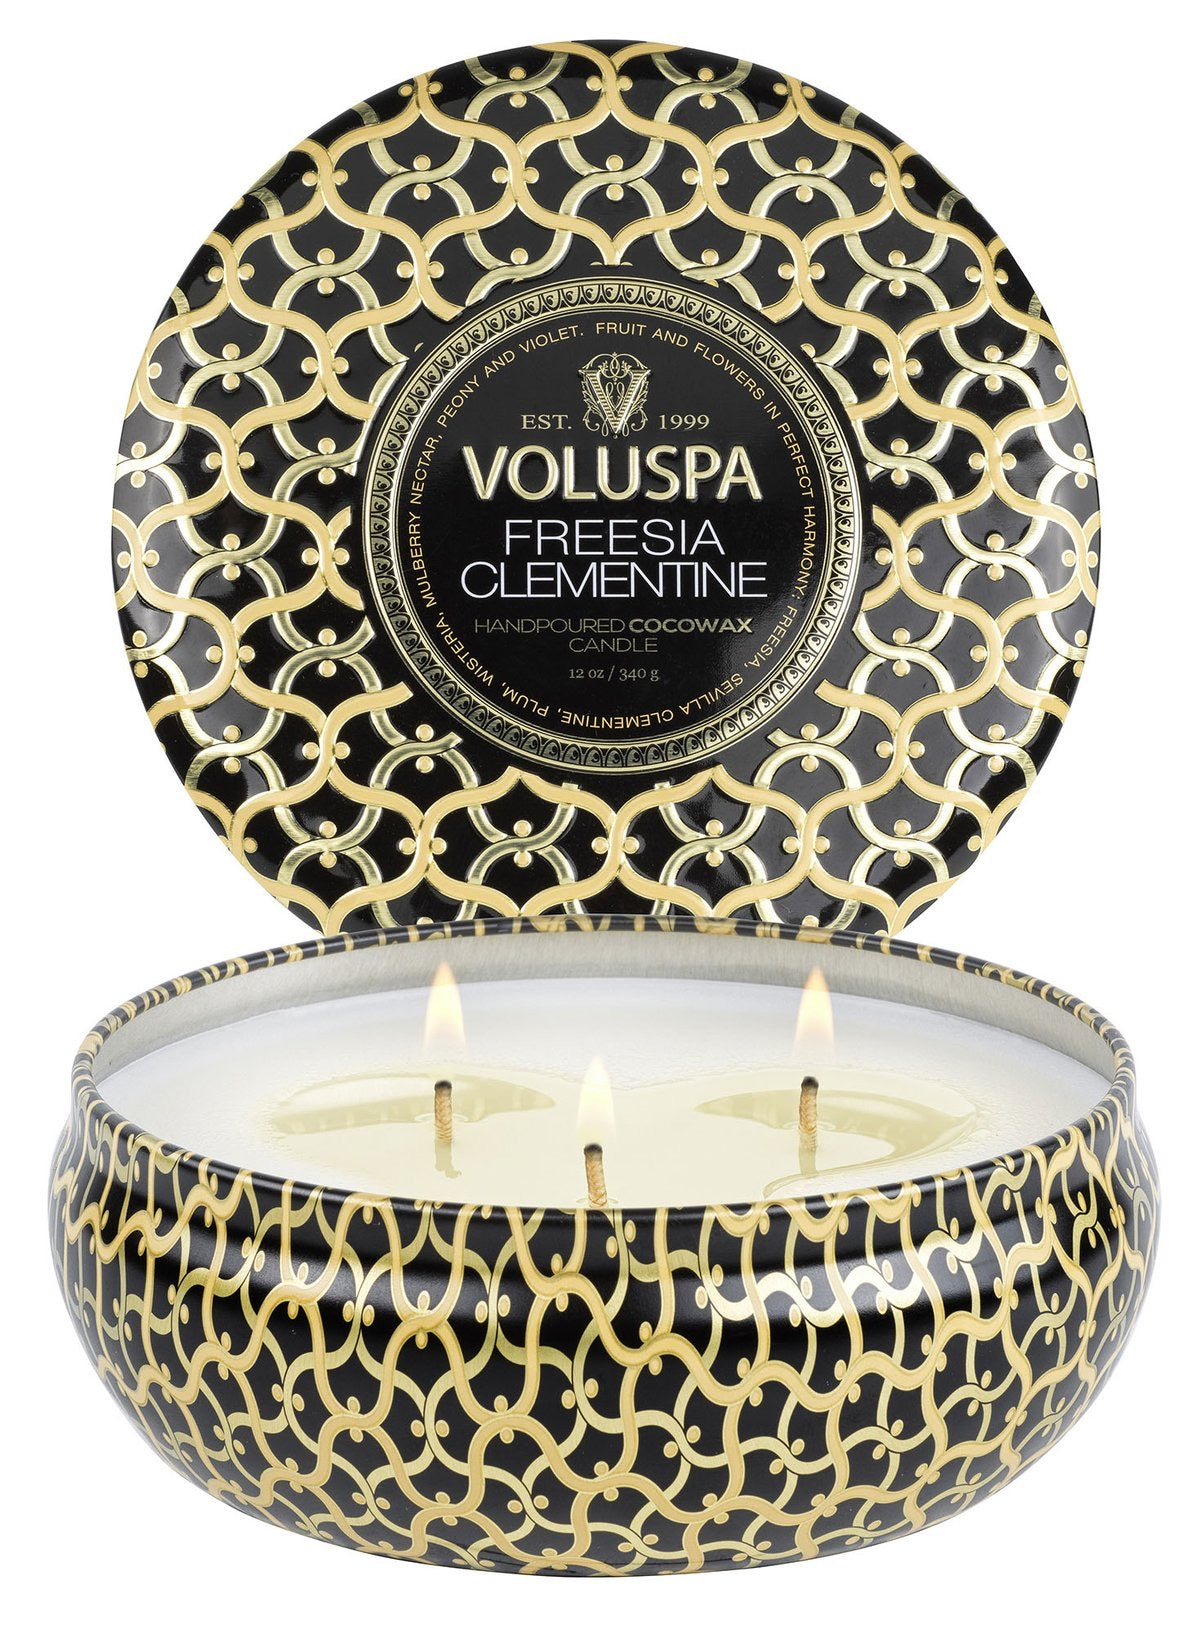 Voluspa FREESIA CLEMENTINE 3 WICK TIN CANDLE